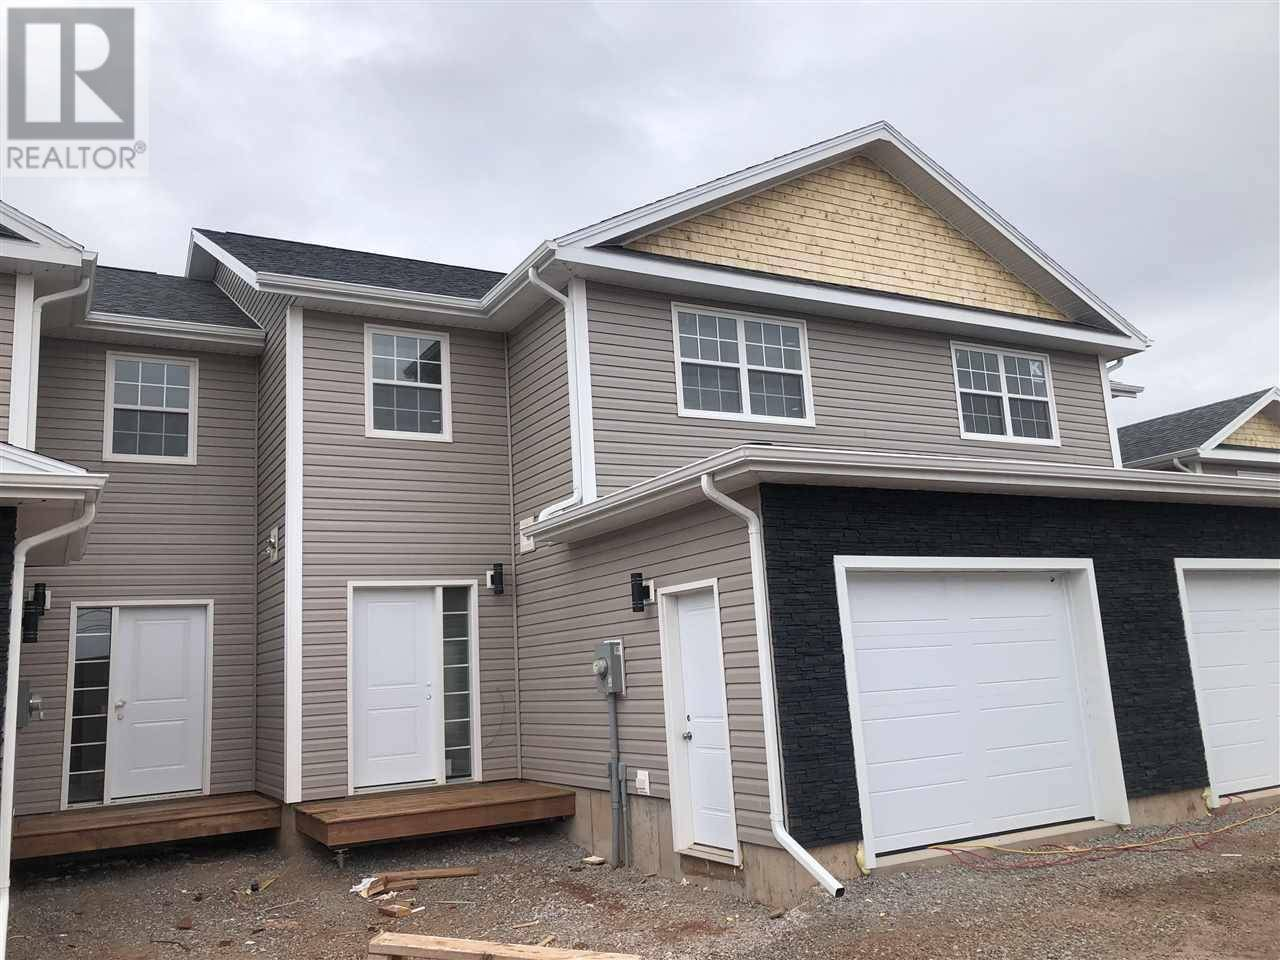 Townhouse for sale at 74 Macwilliams Rd Unit D East Royalty Prince Edward Island - MLS: 201916463